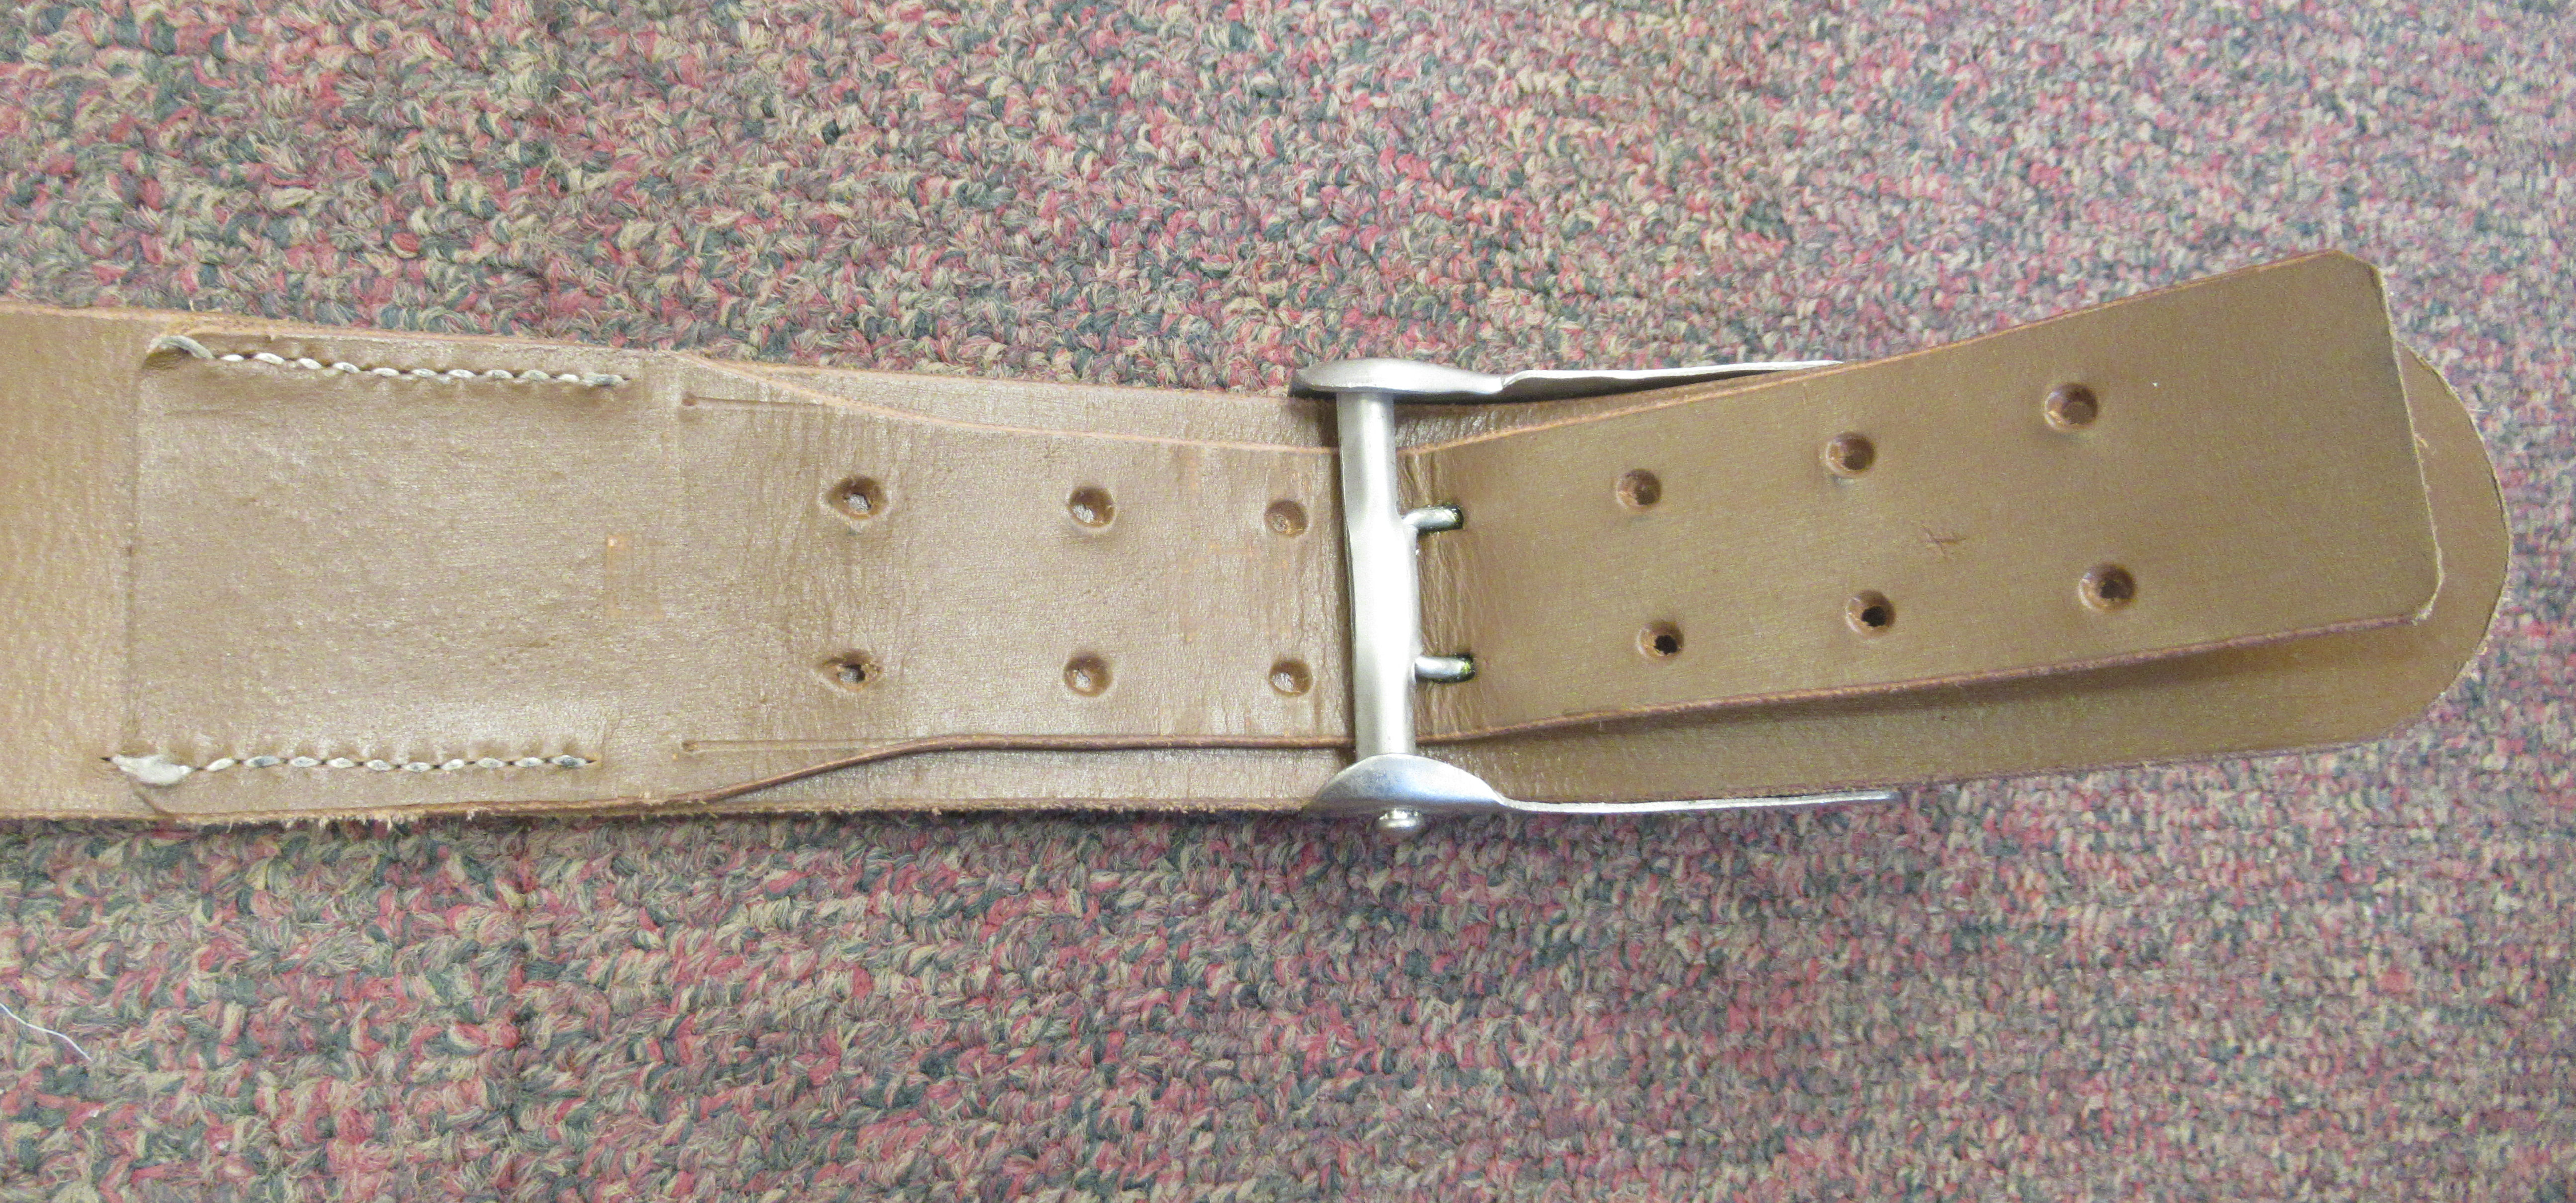 A Third Reich Luftwaffe black hide belt with an impressed weathered spreadeagle emblem, on the white - Image 4 of 5